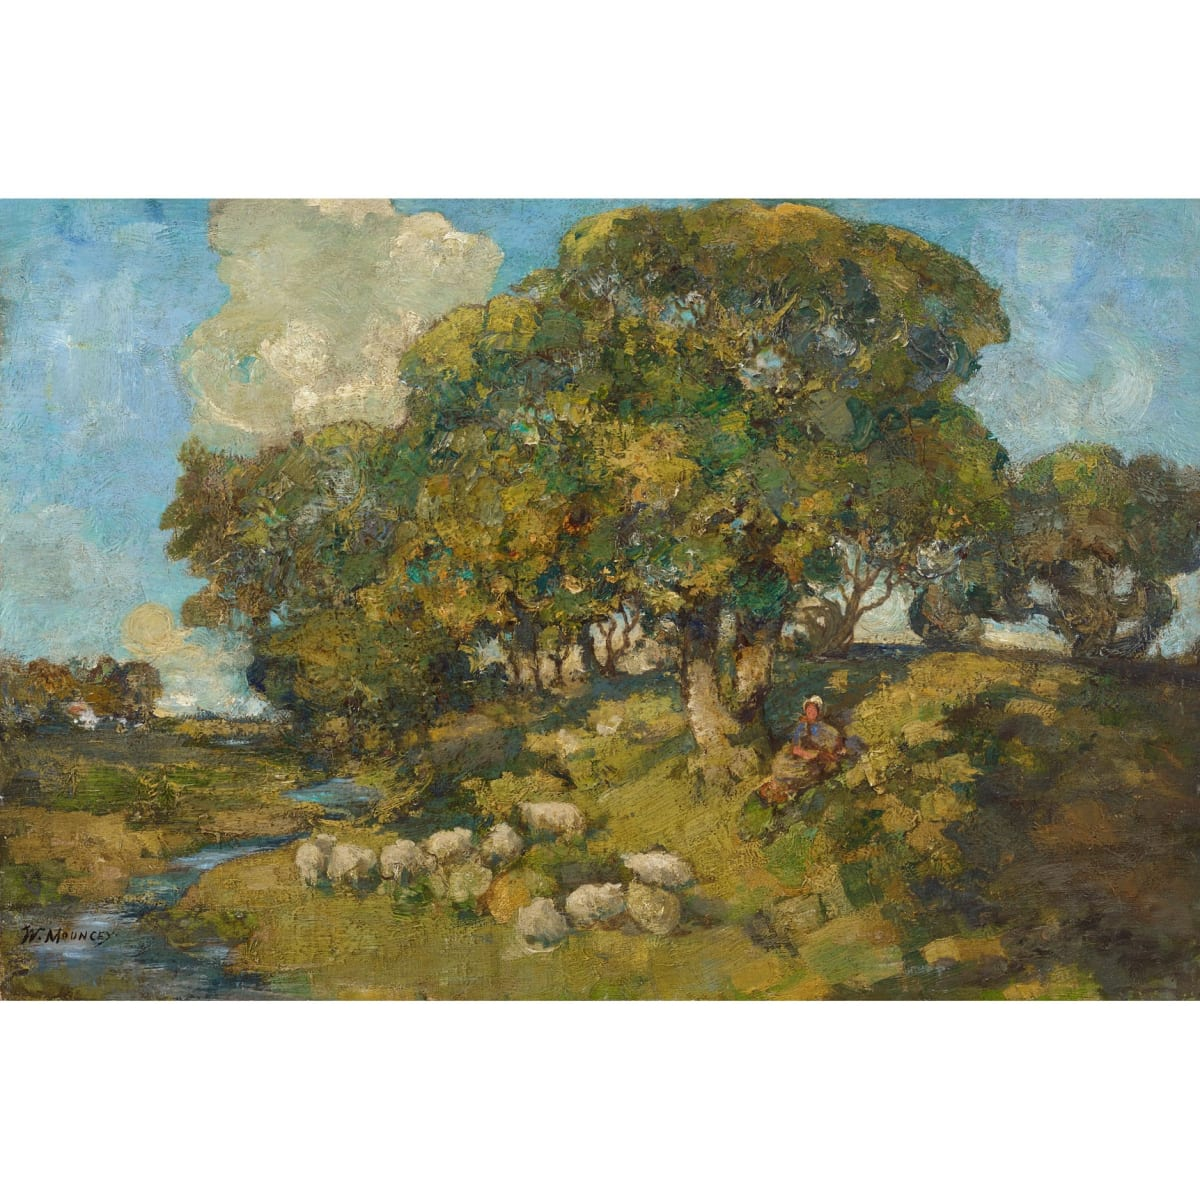 William Mouncey Autumn Landscape signed; signed and inscribed with title on stretcher verso oil on canvas 16 x 24 inches